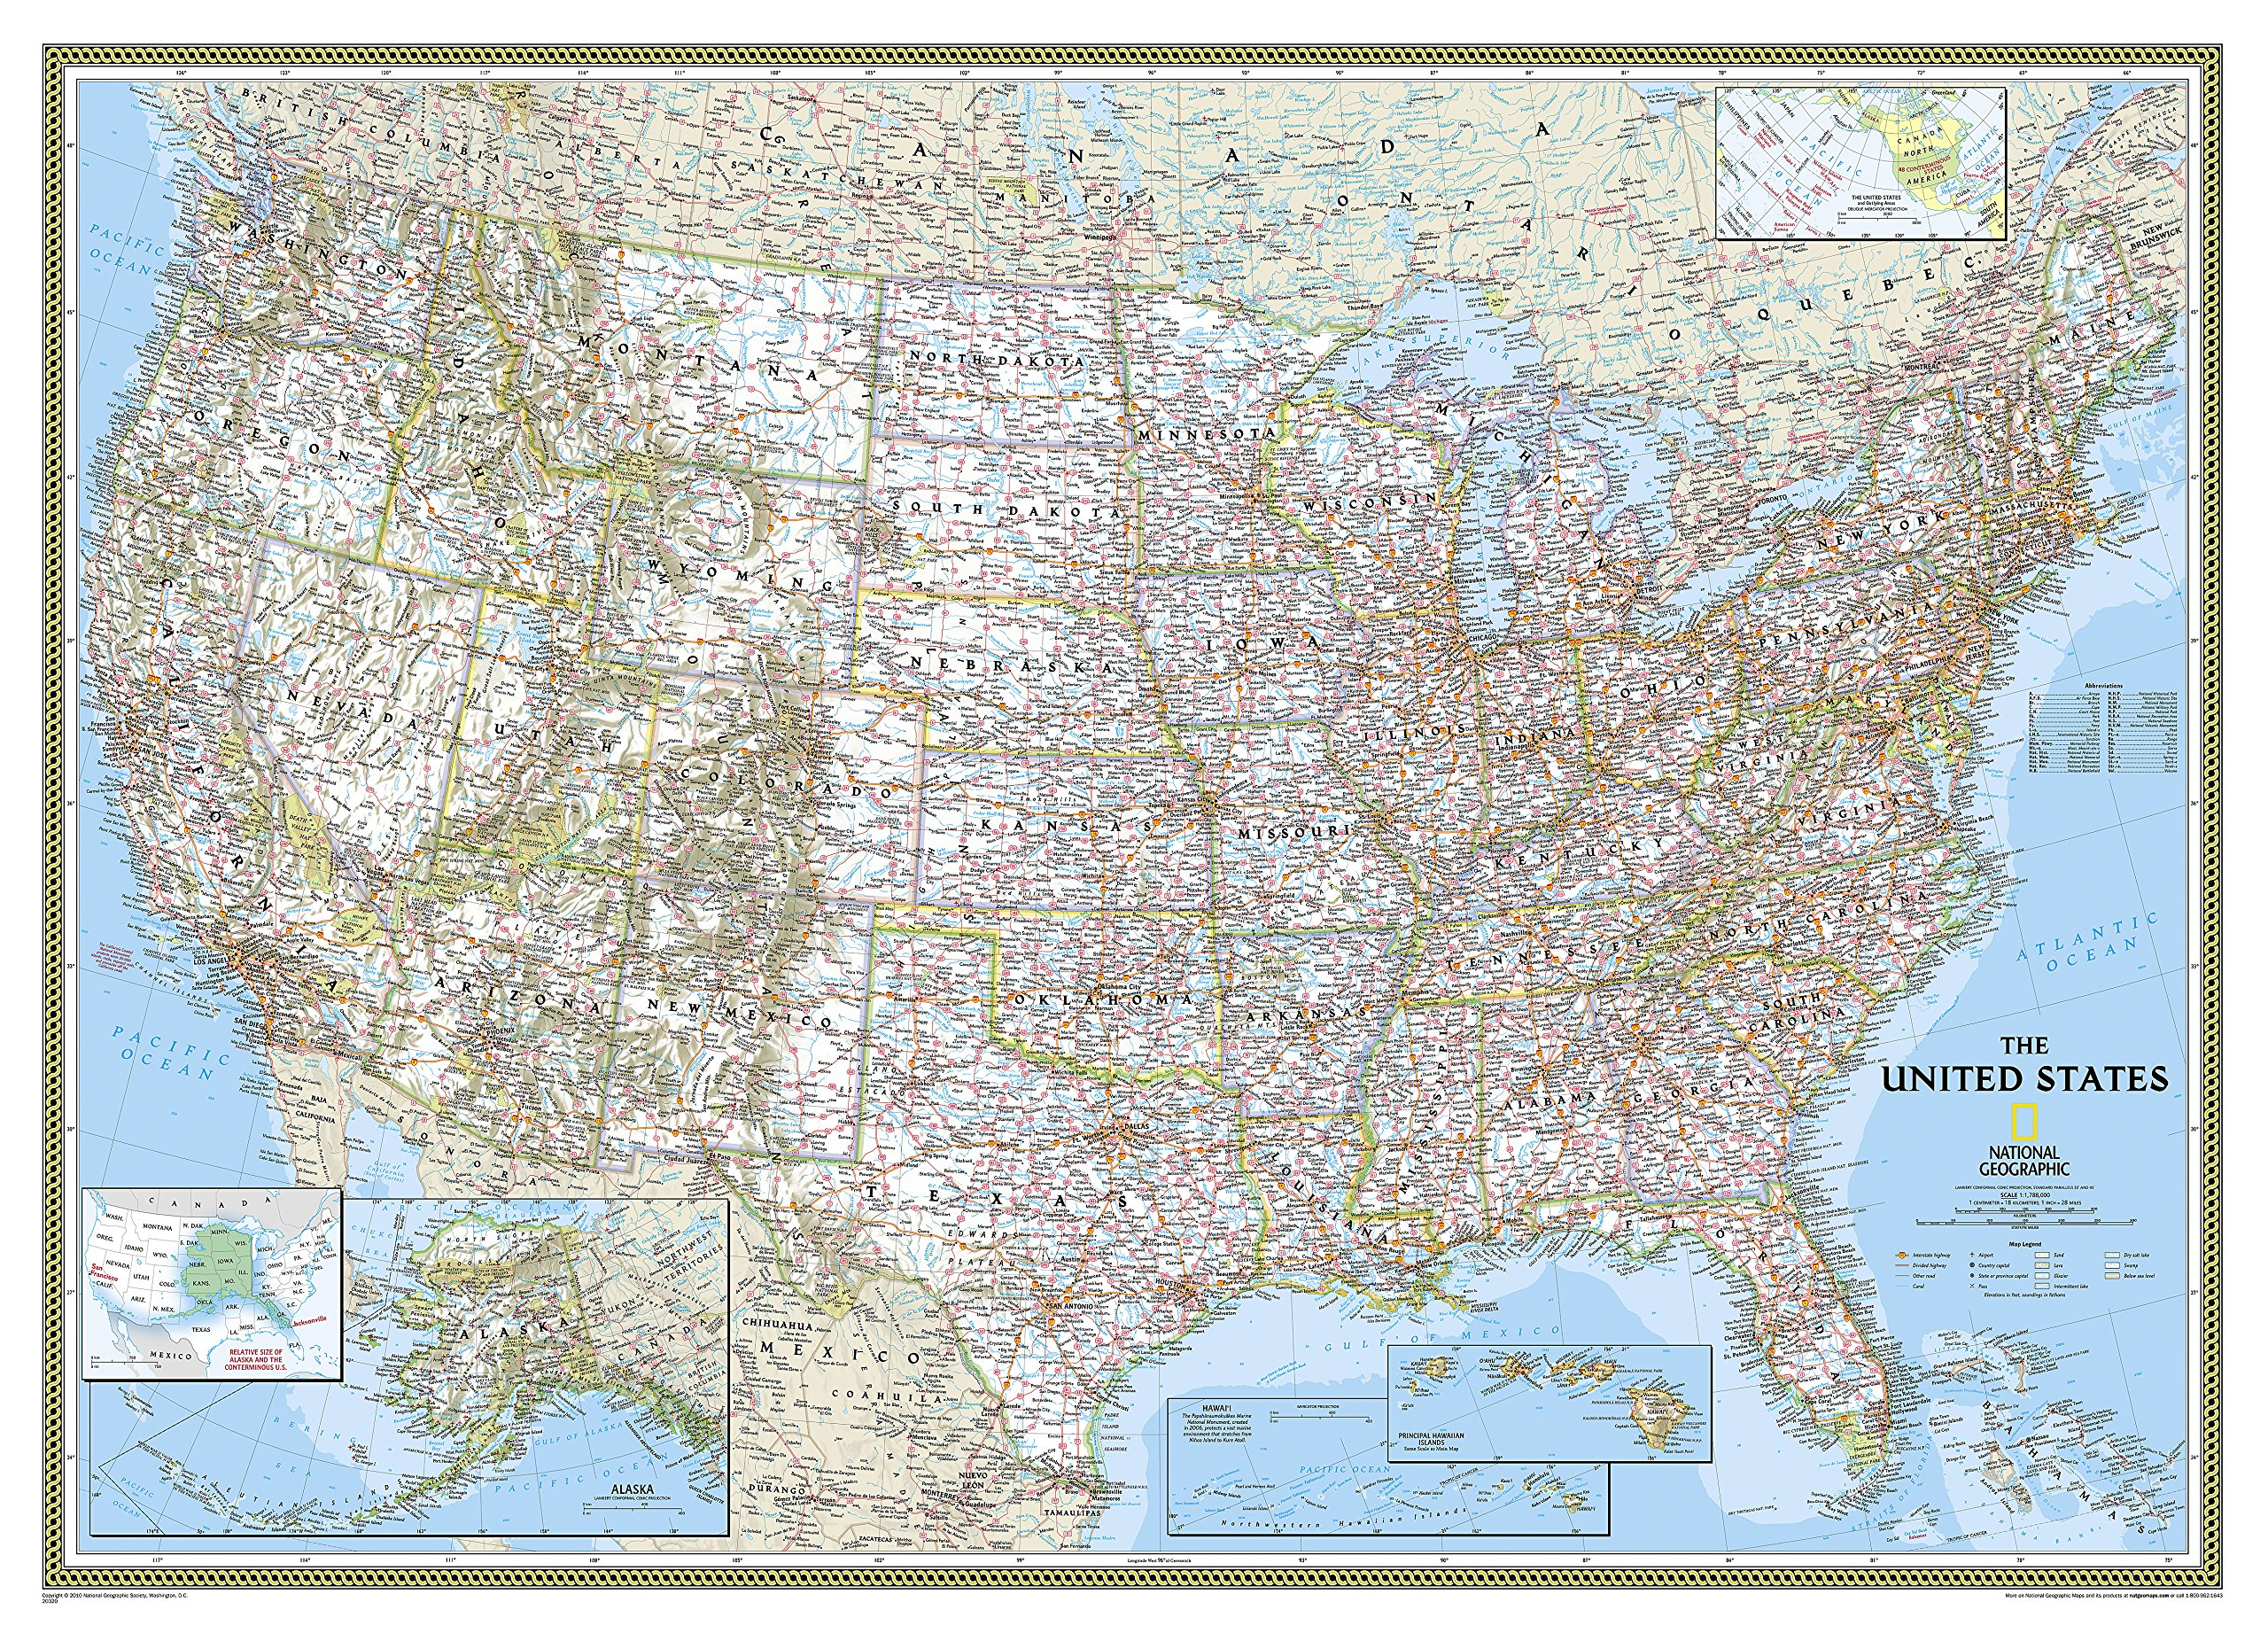 National Geographic: United States Classic Mural Wall Map (106 x 73.75 inches) (National Geographic Reference Map)